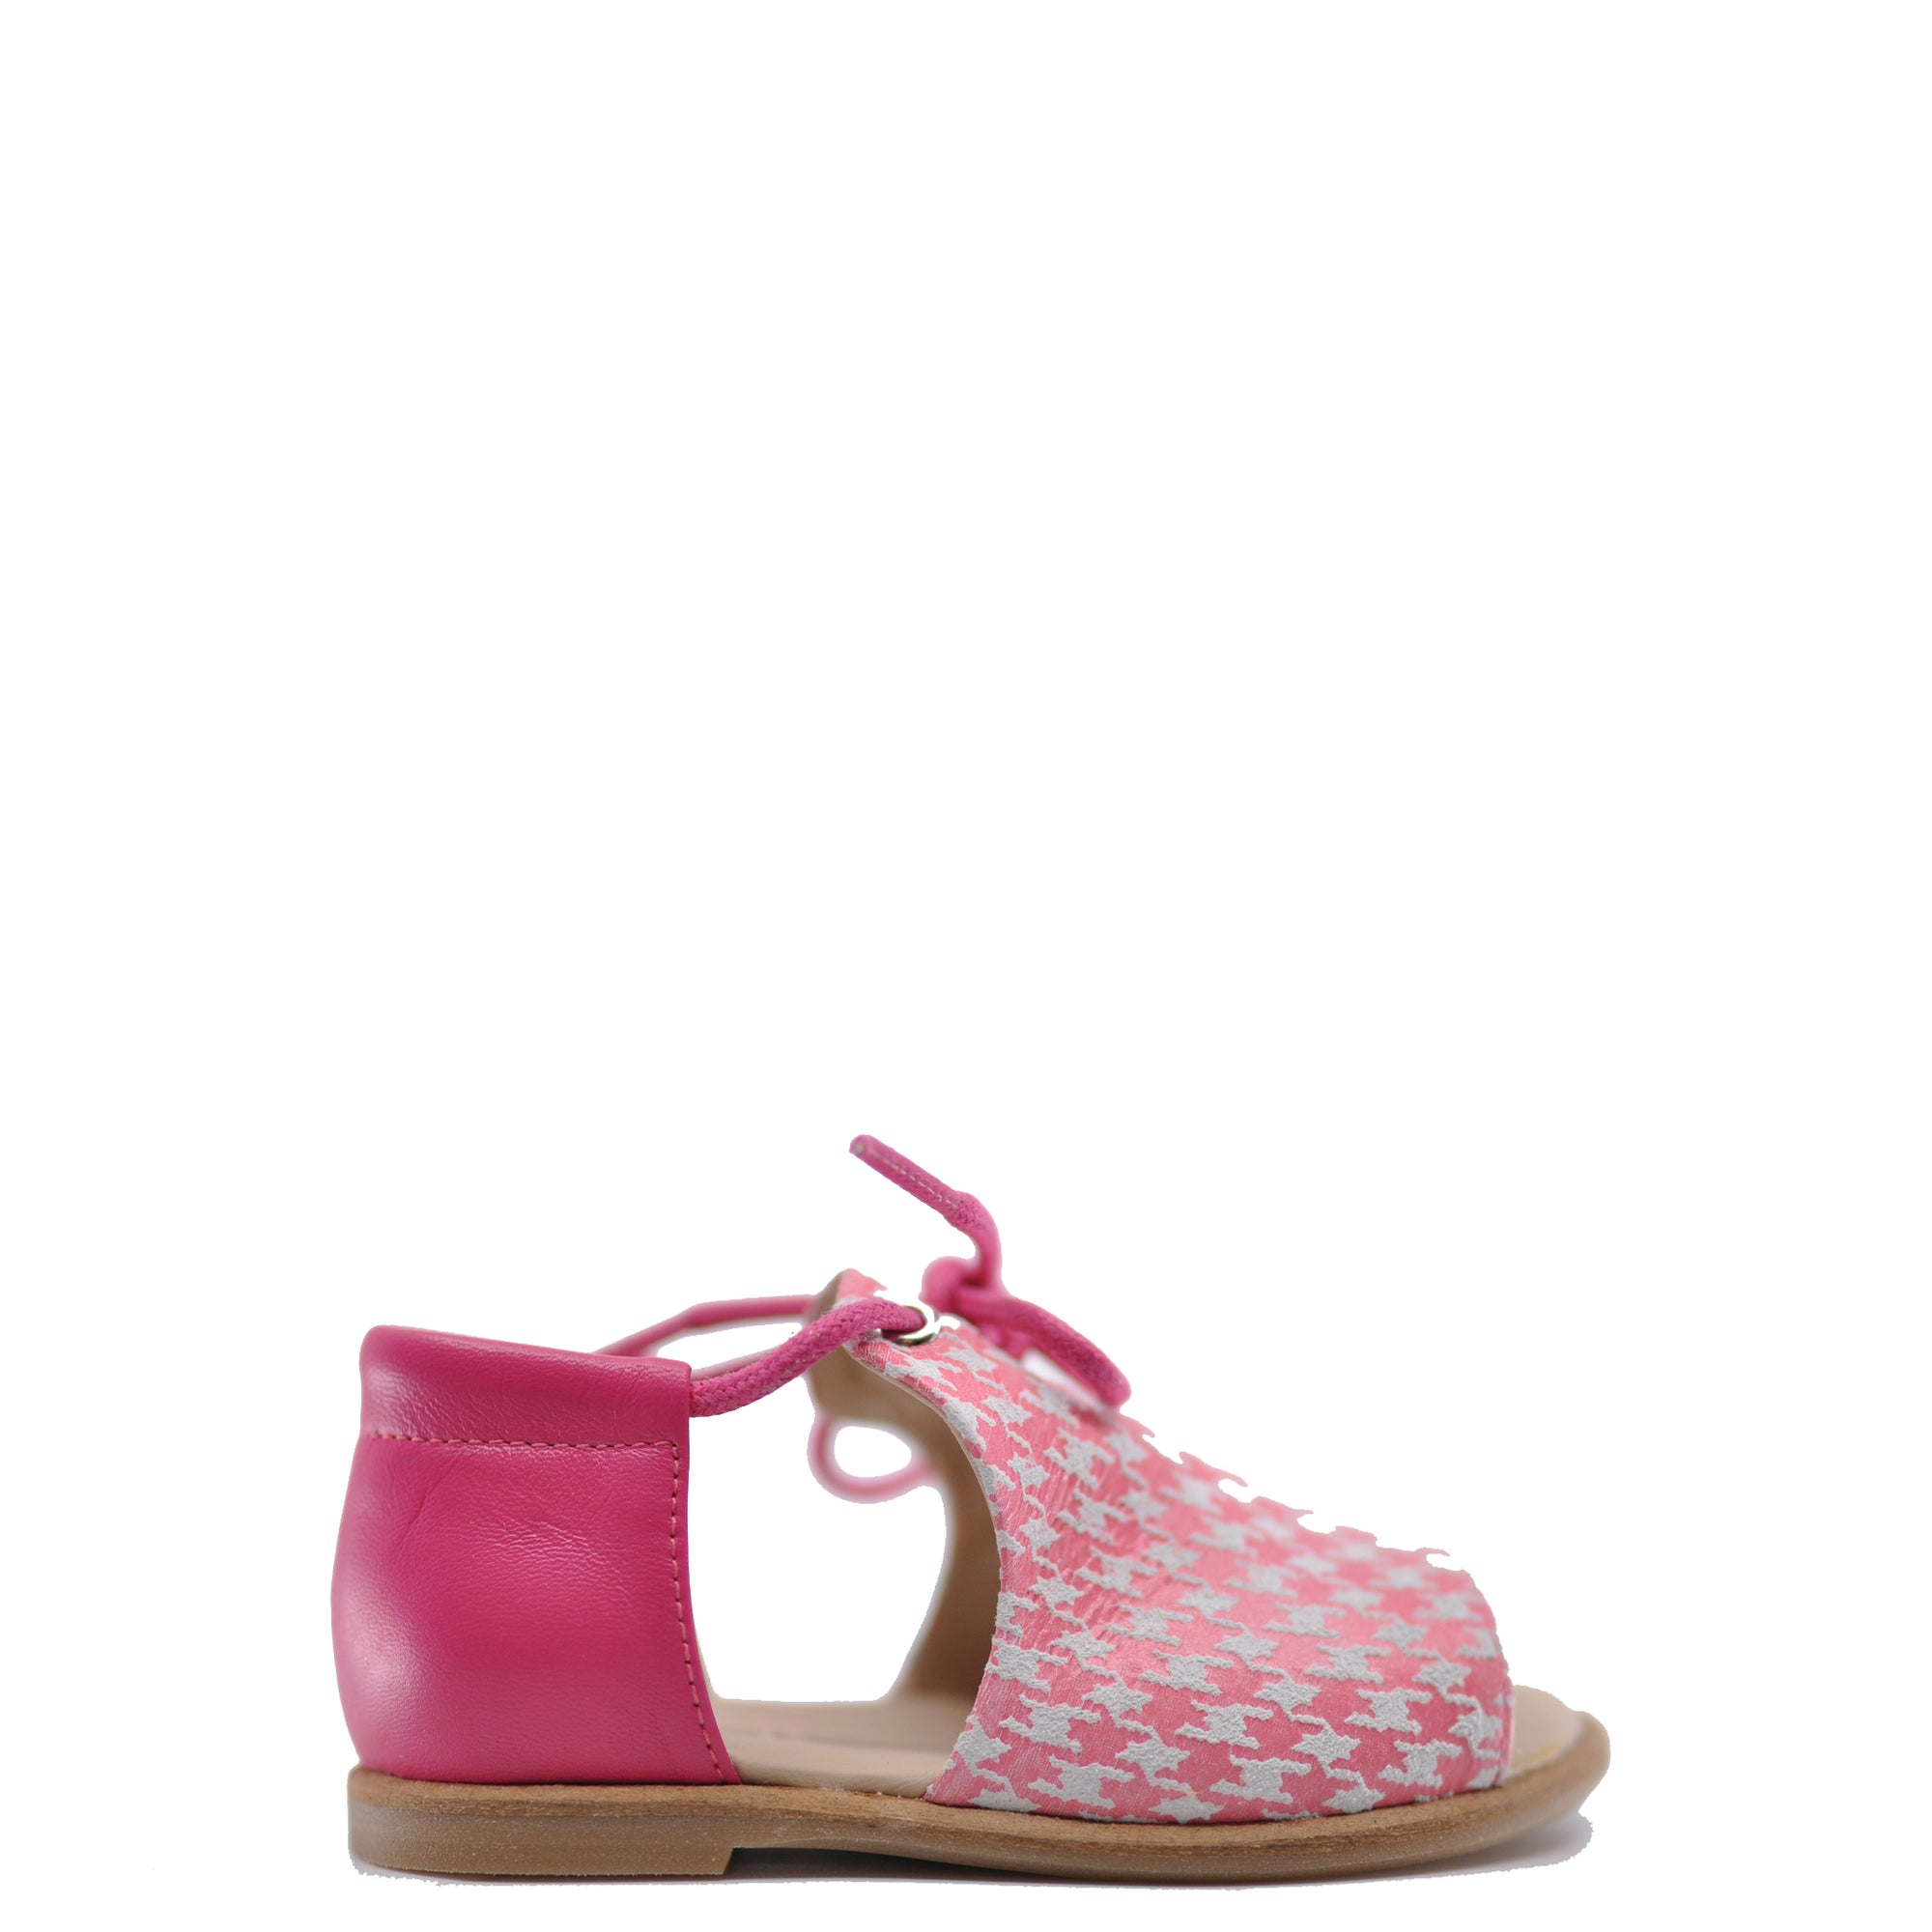 Manuela Pink Houndstooth Baby Sandal-Tassel Children Shoes